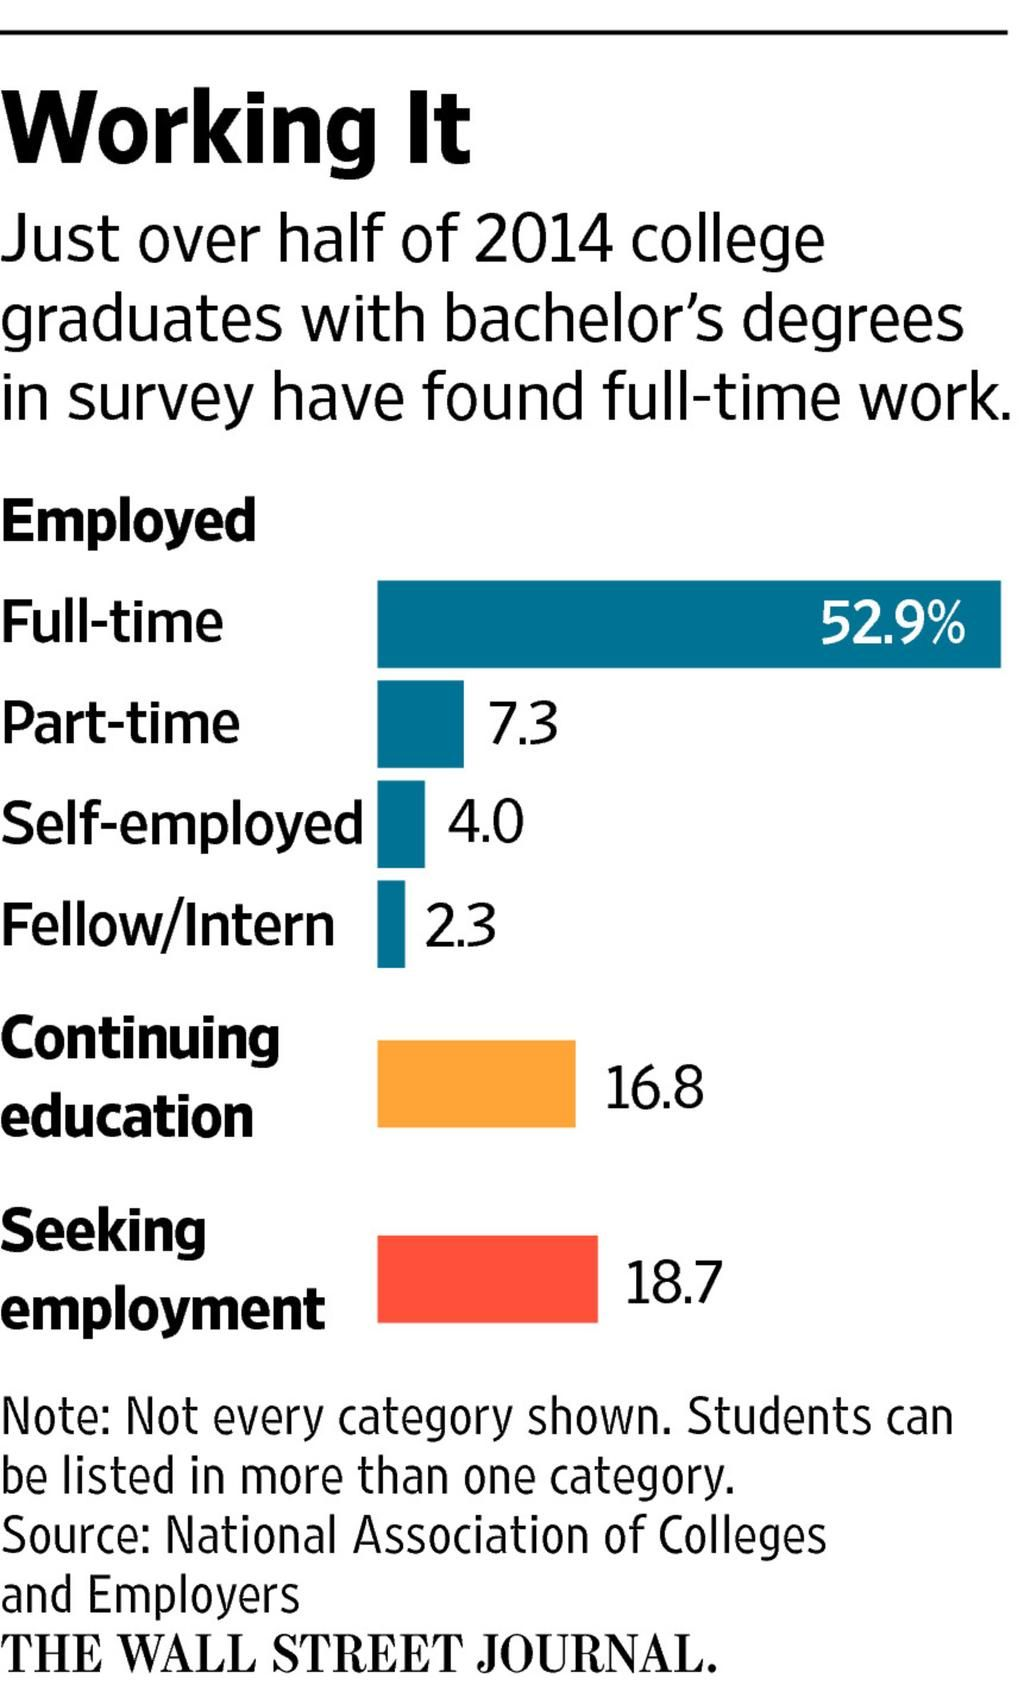 The job market for fresh college grads is improving, with